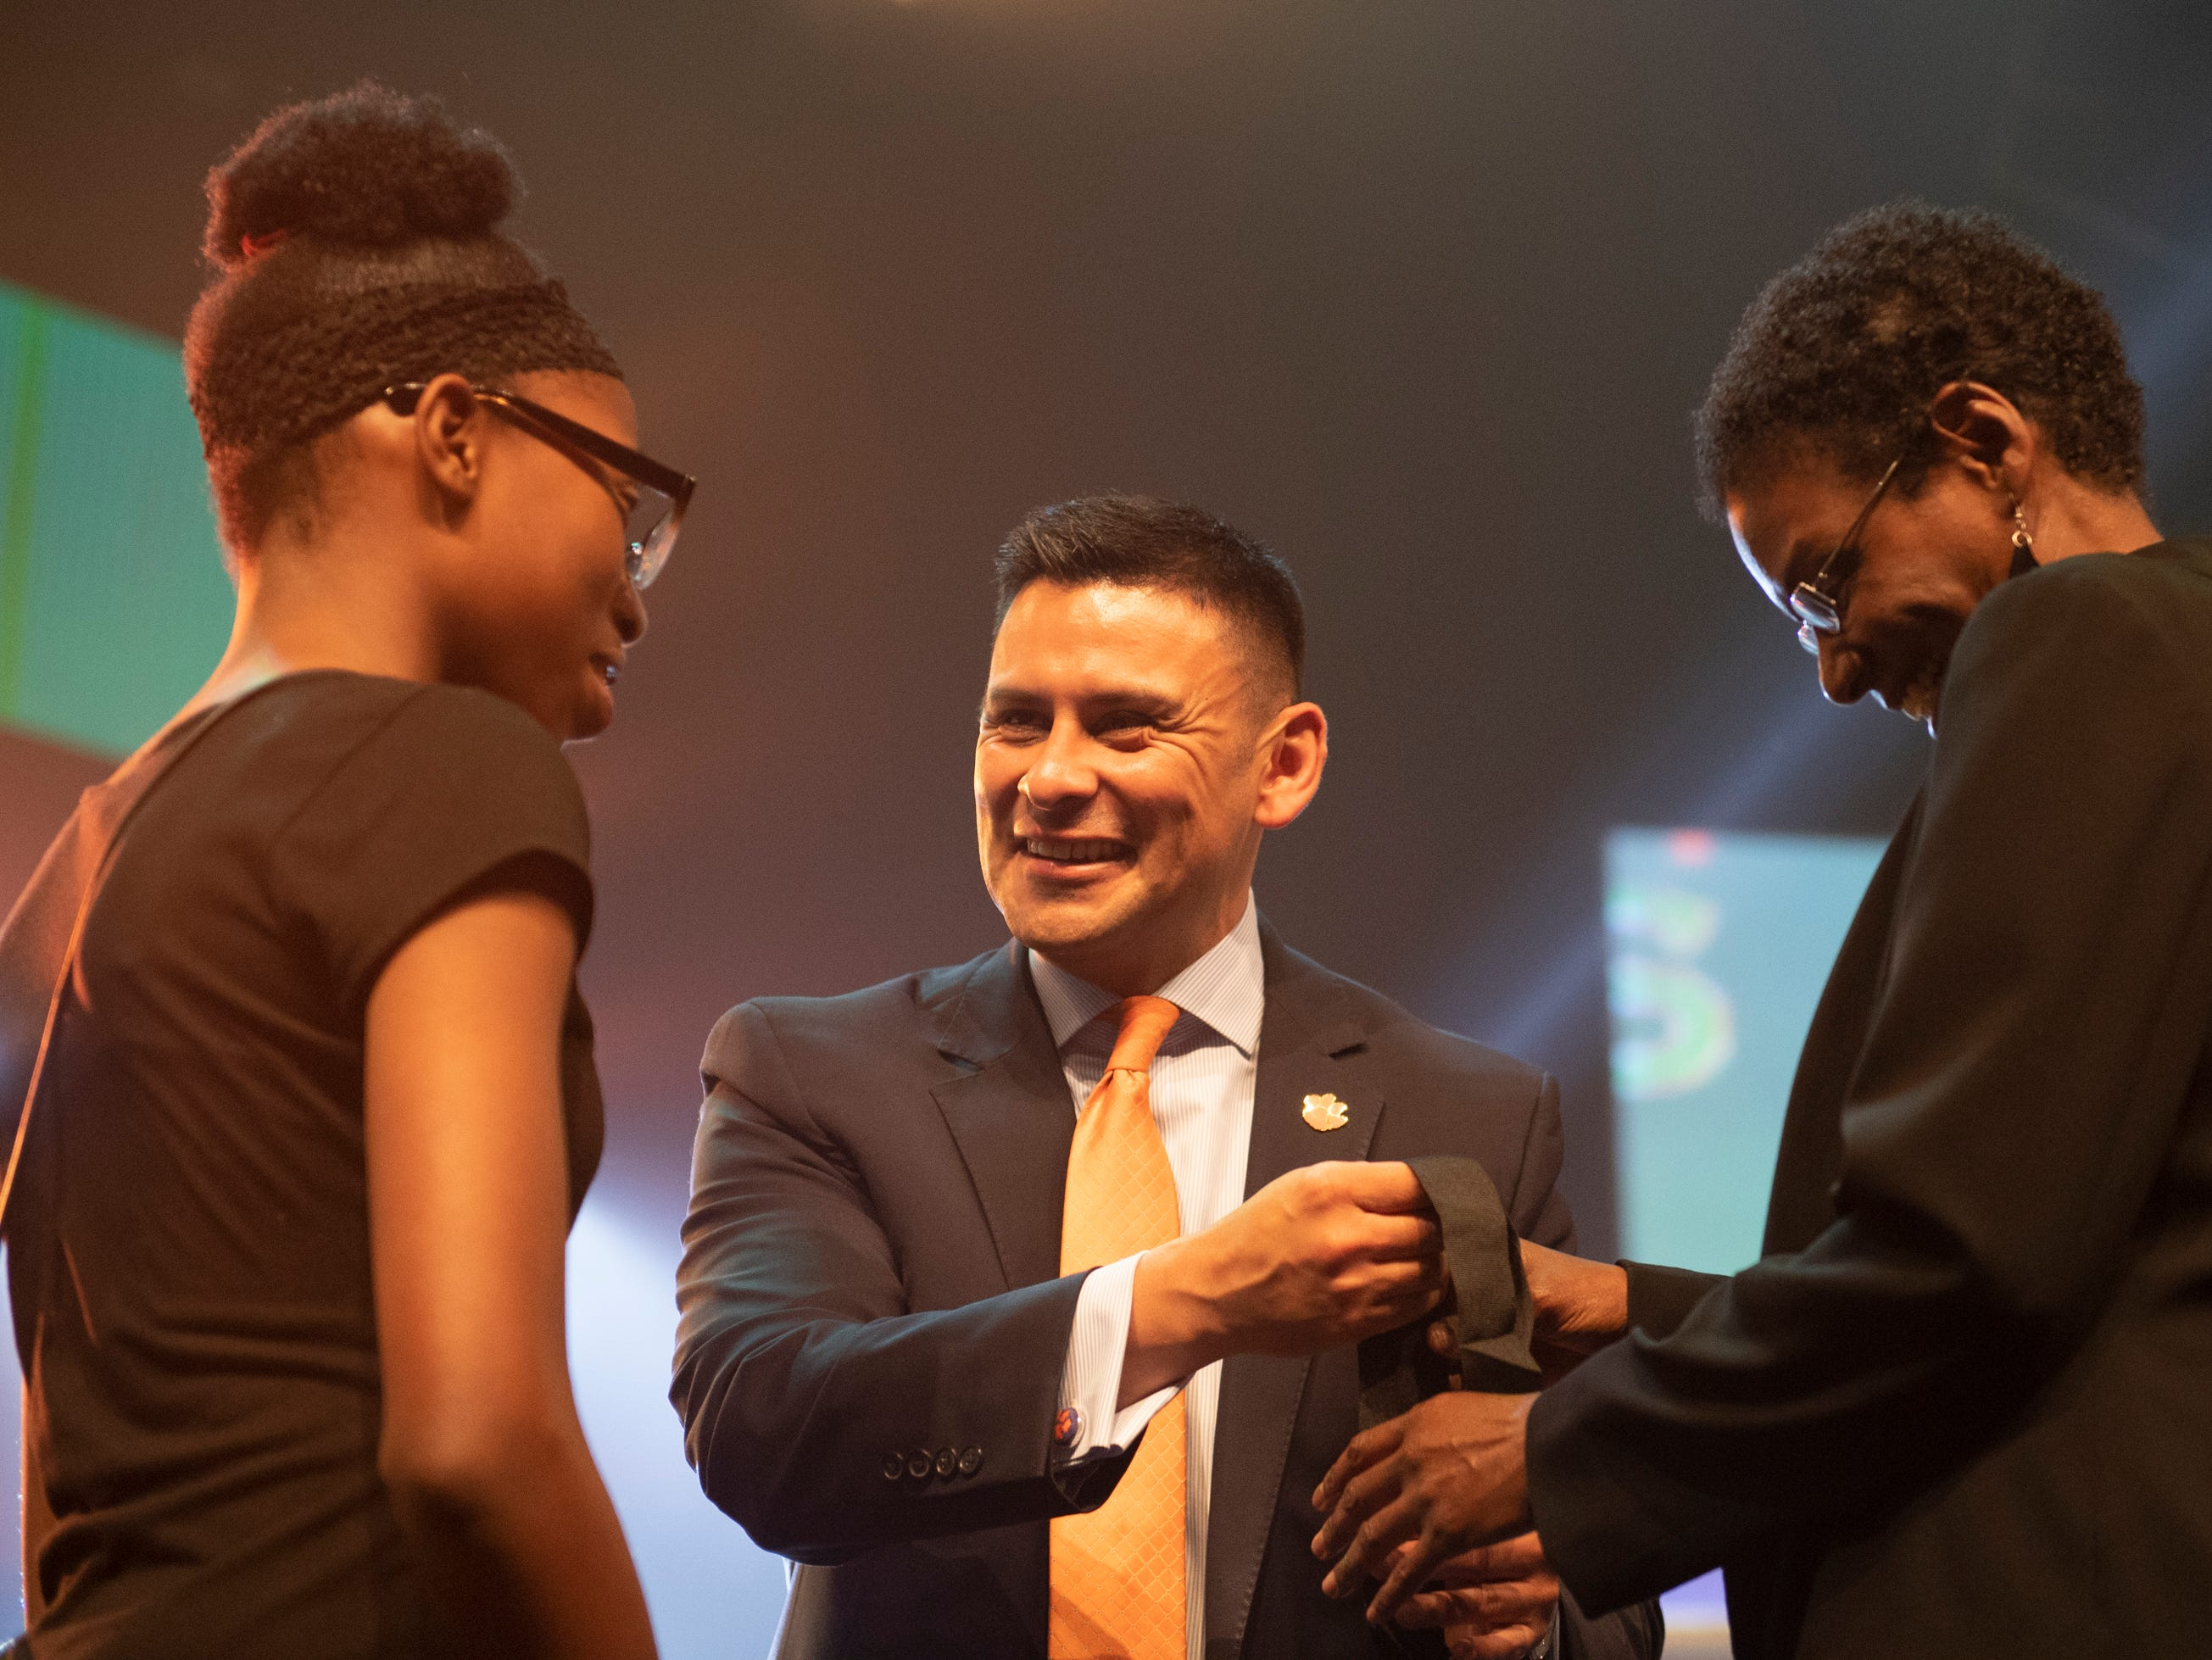 Julio Hernandez, chief of staff at the Division of Inclusion and Equity at Clemson University, presents Ya'Quiyah Thomas and her mentor, Cheryl Allen, with a medal for Thomas during the Coaches 4 Character ACE Awards held at Relentless Church Wednesday, May 15, 2019.